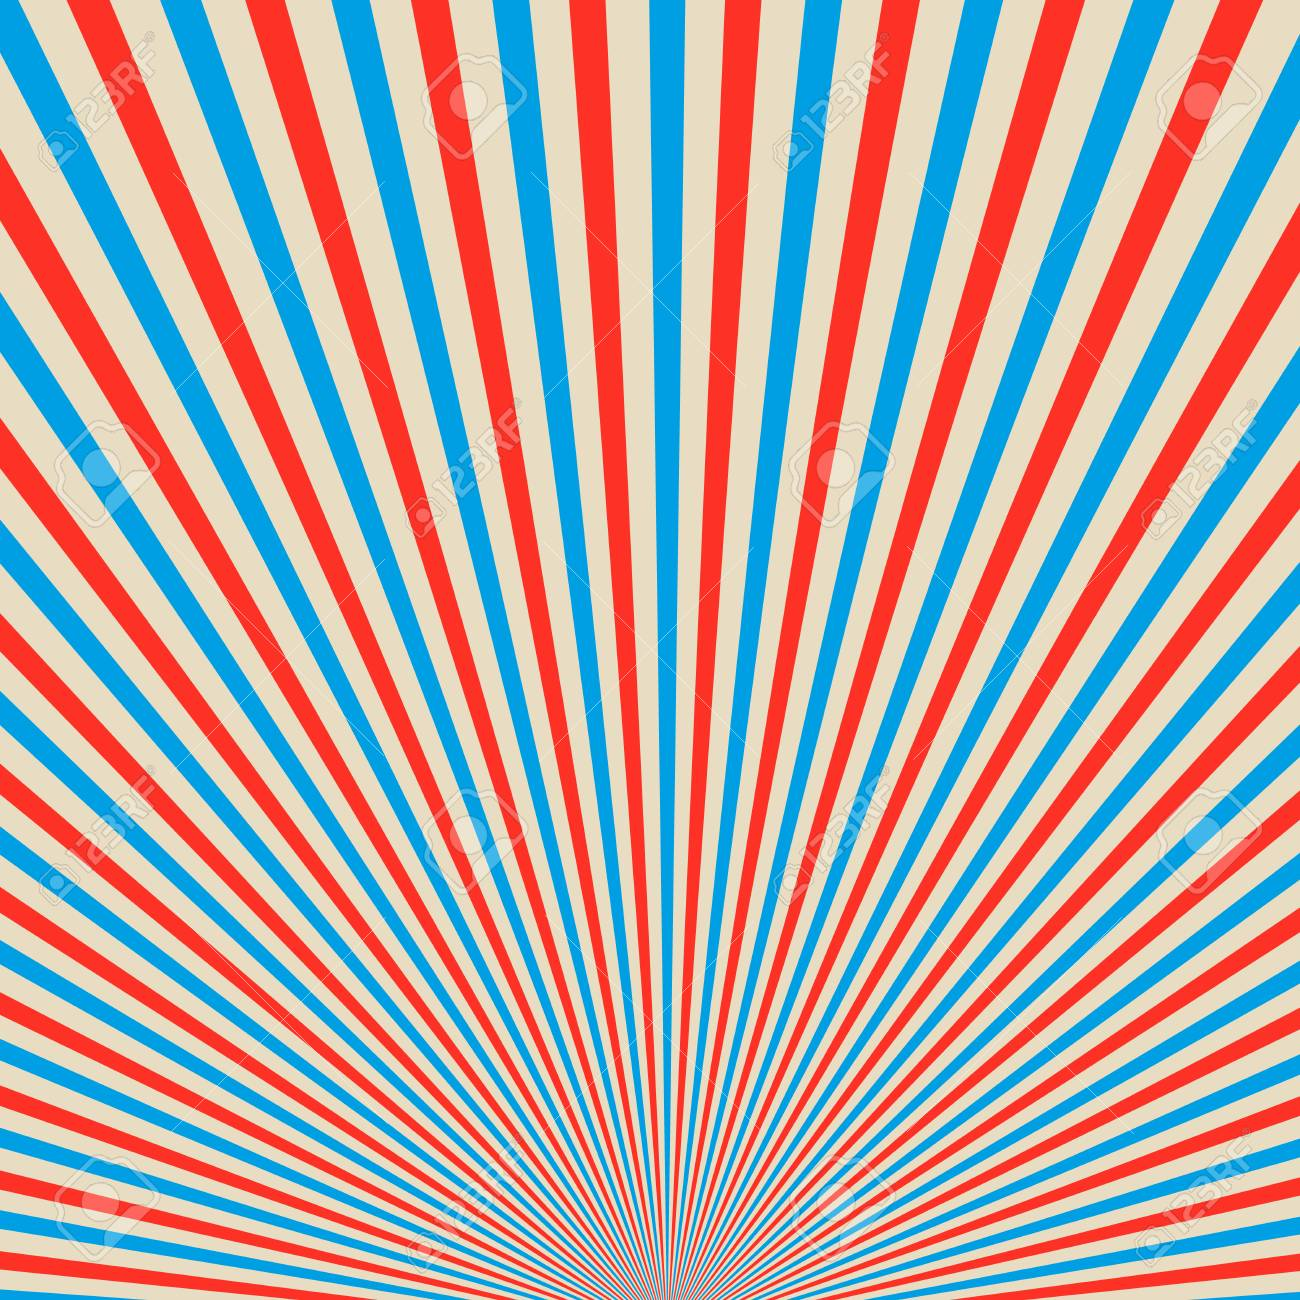 Abstract Colored Sunbeams Background Red And Blue Sun Rays On